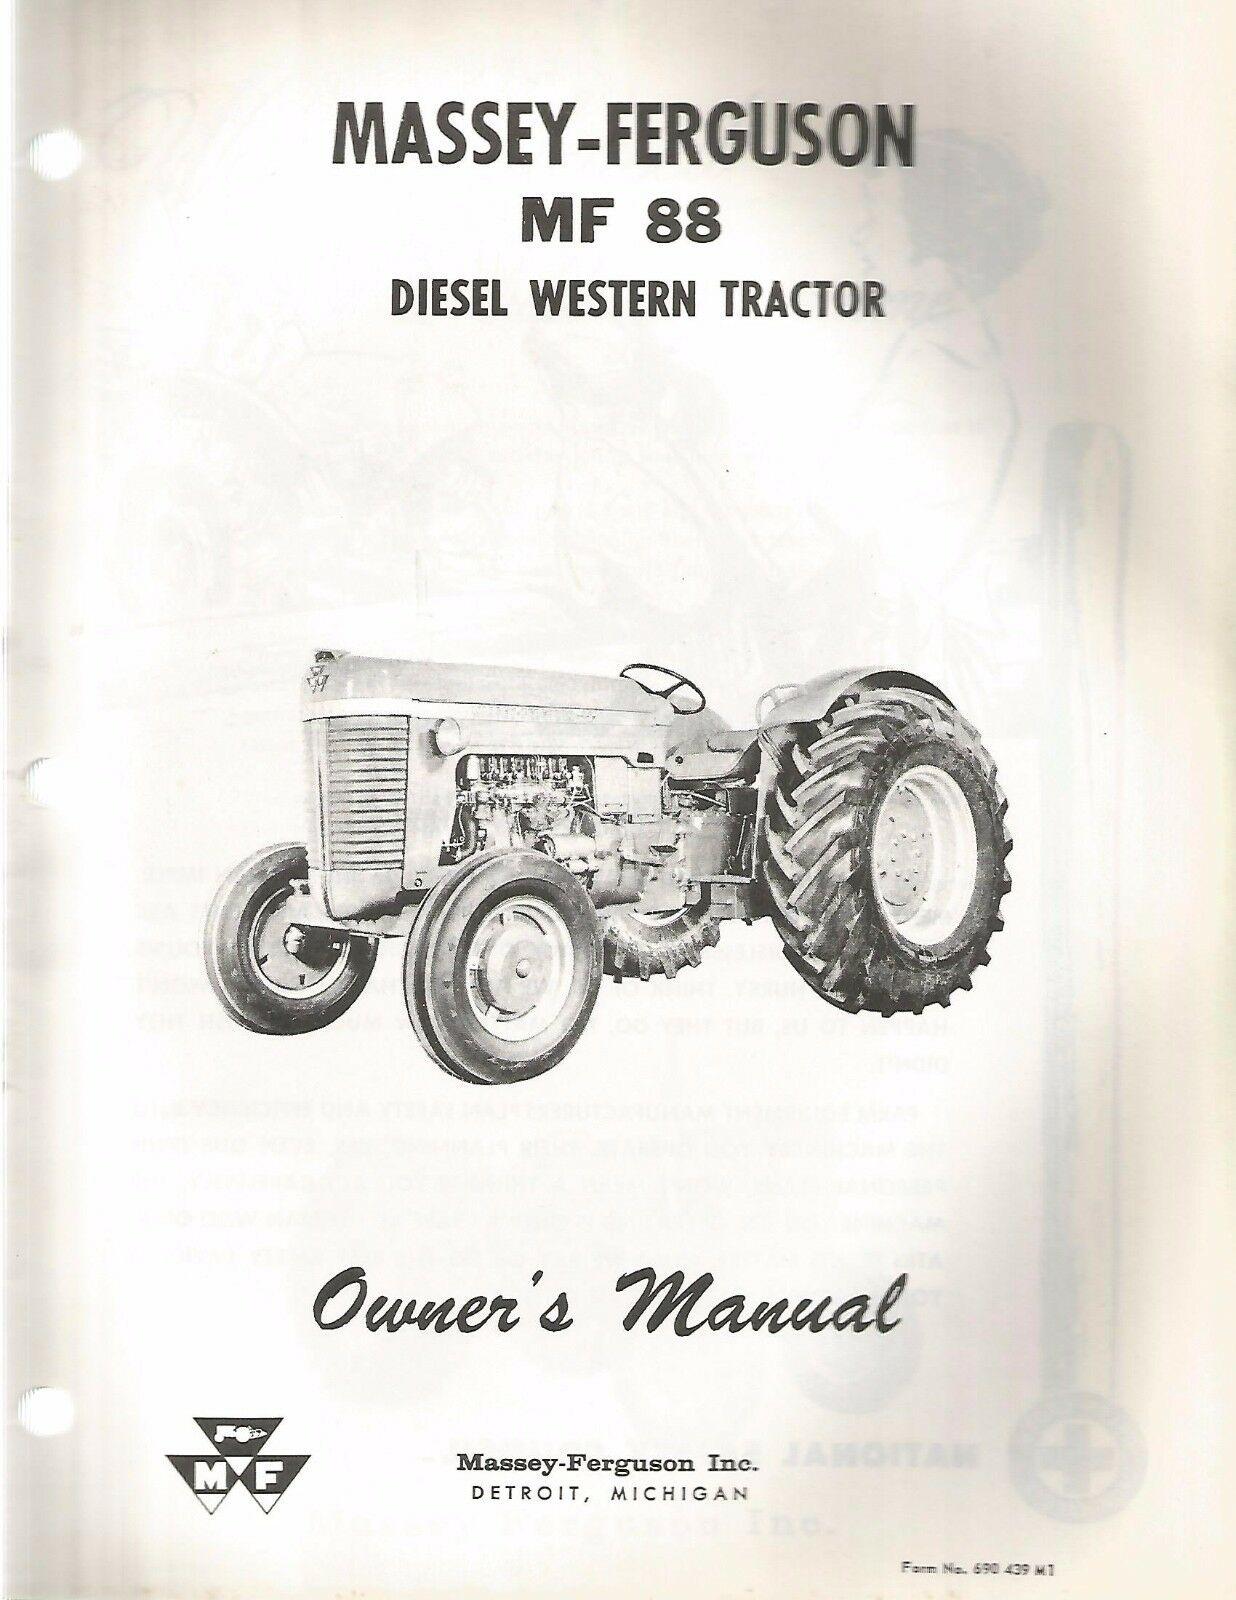 Massey Ferguson MF 88 Diesel Western Tractor Owner's Manual 1 of 1Only 2  available ...